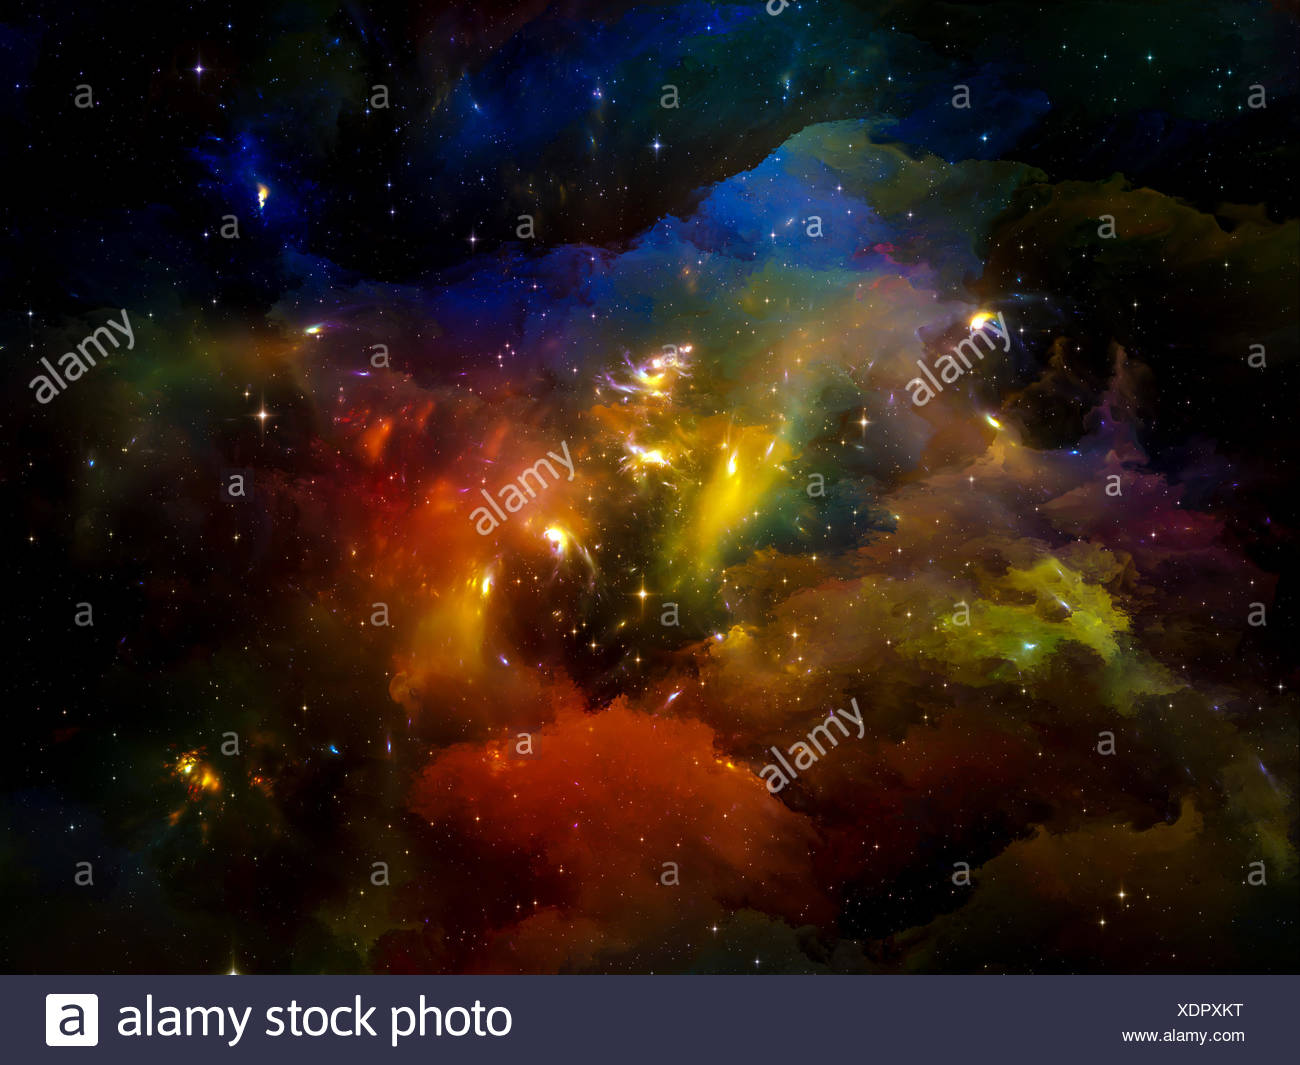 Universe Is Not Enough series. Backdrop of fractal elements, lights and textures on the subject of fantasy, science, religion and design - Stock Image